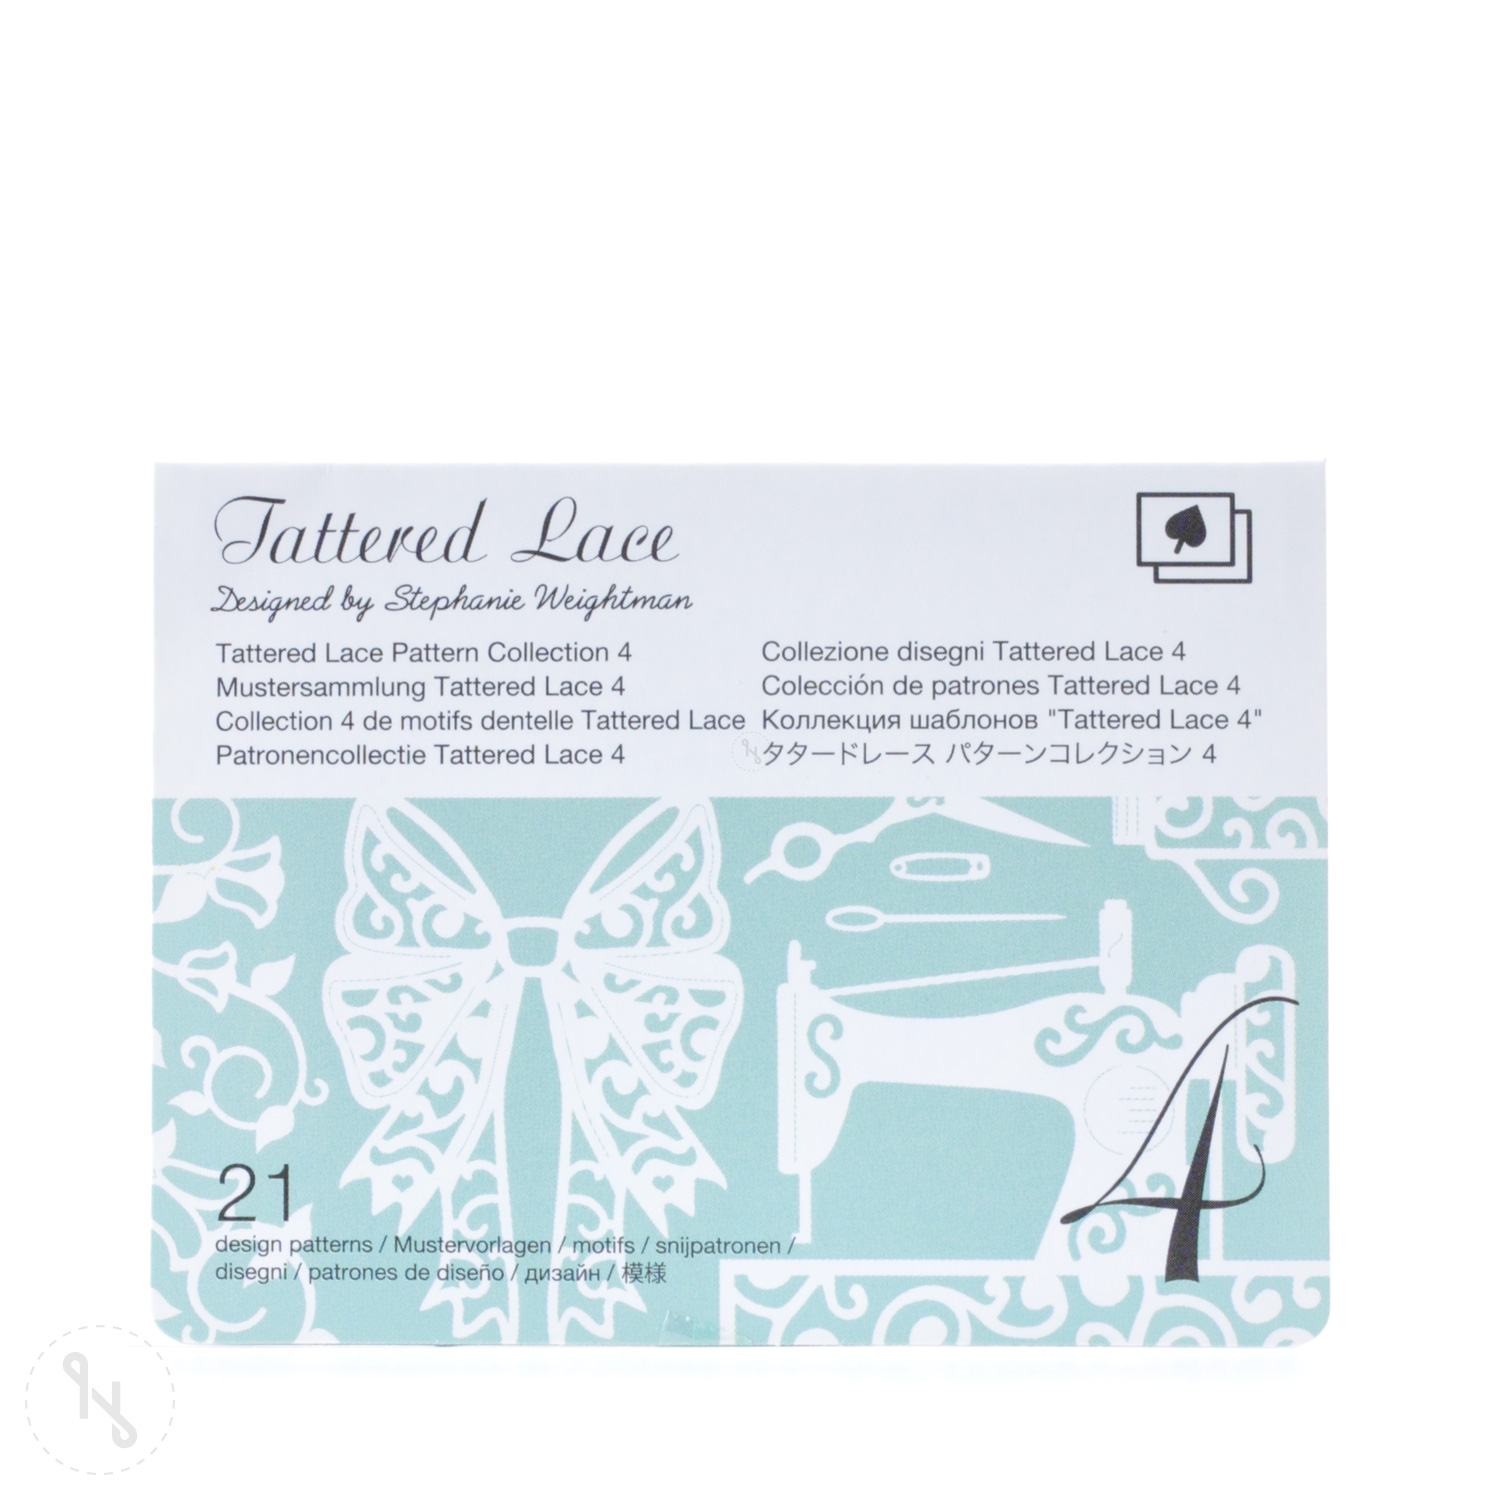 BROTHER Tattered Lace Pattern Collection 4 - 21 Designs